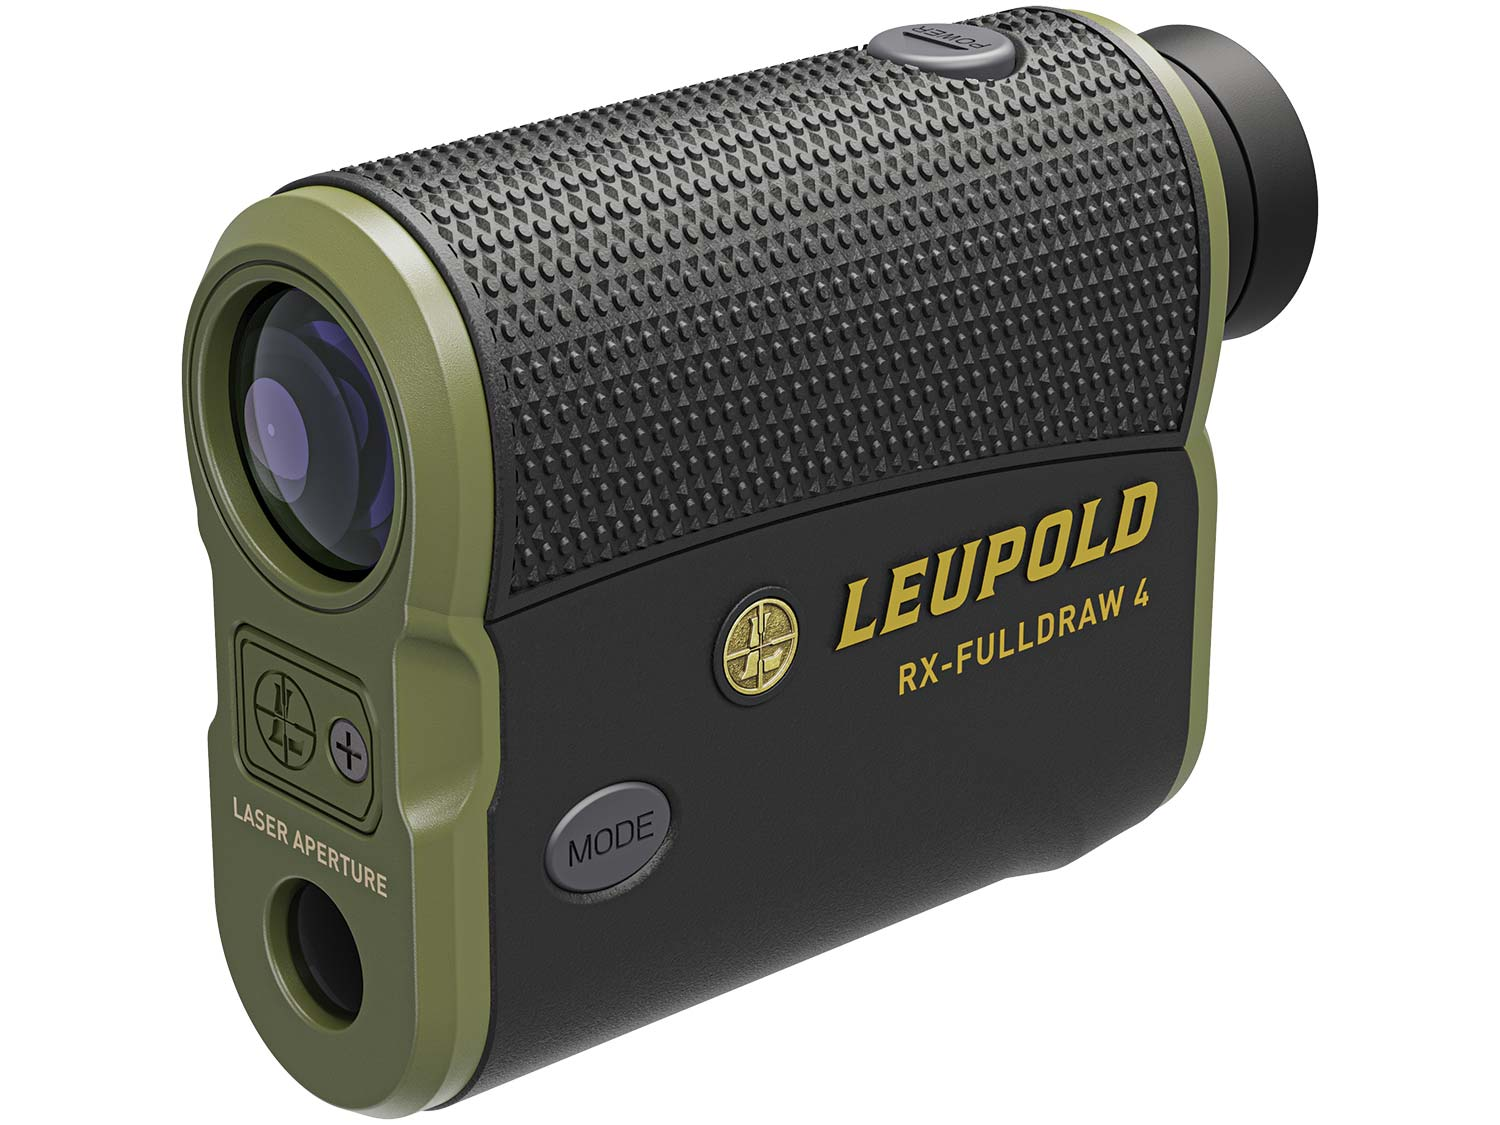 The Leupold RX-Fulldraw rangefinding optic on a white background.